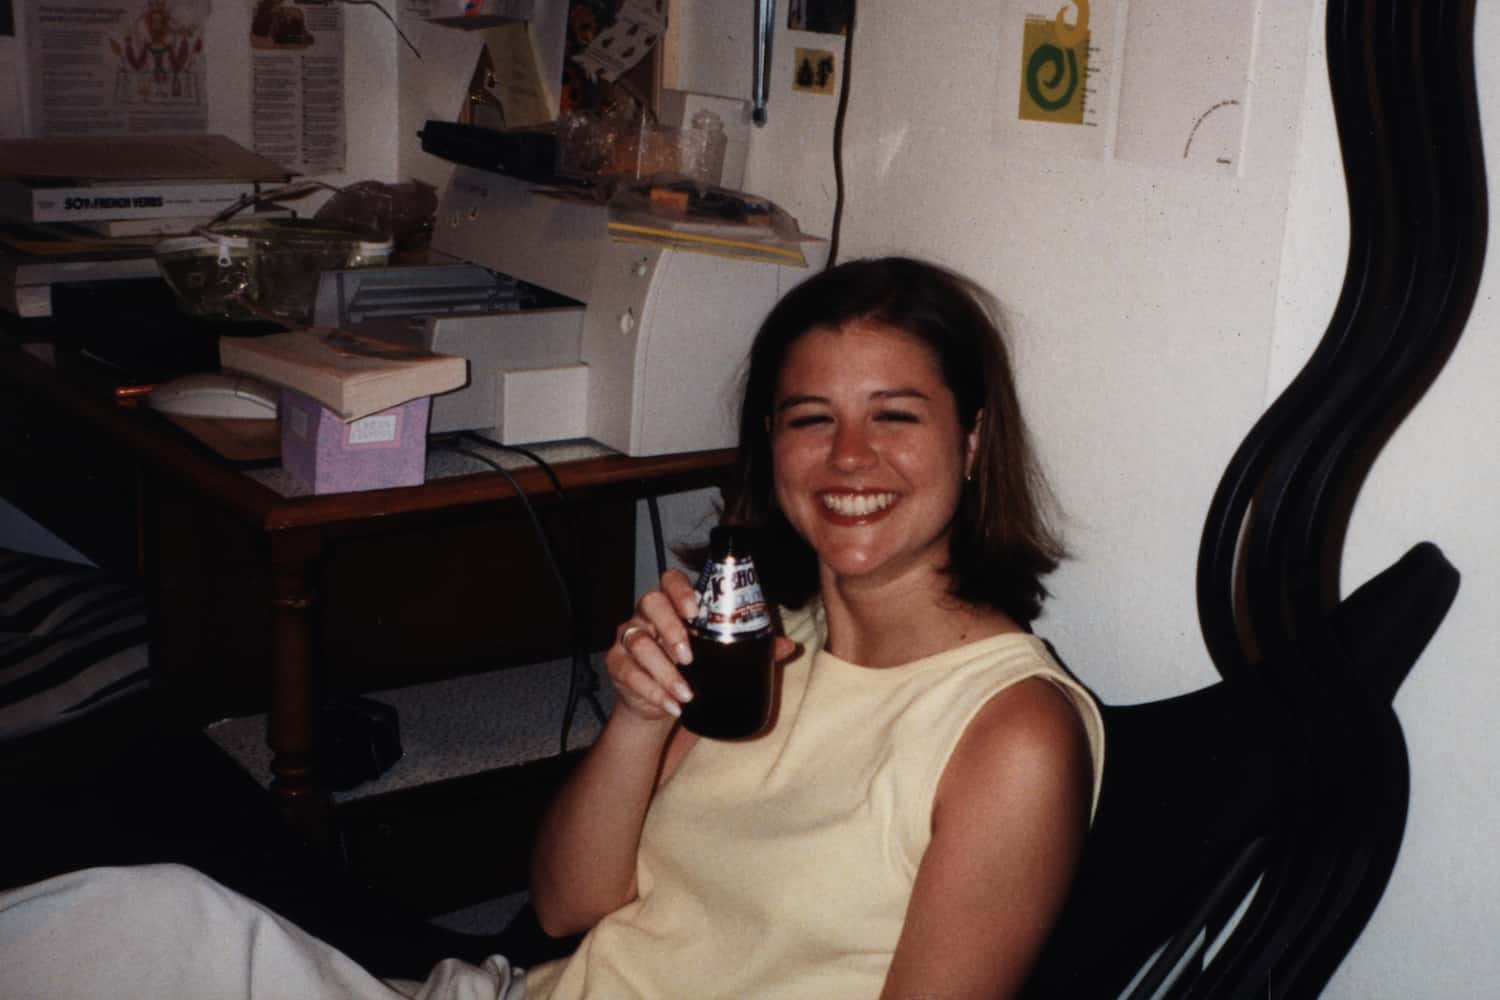 girl holding up a beer in a dorm room